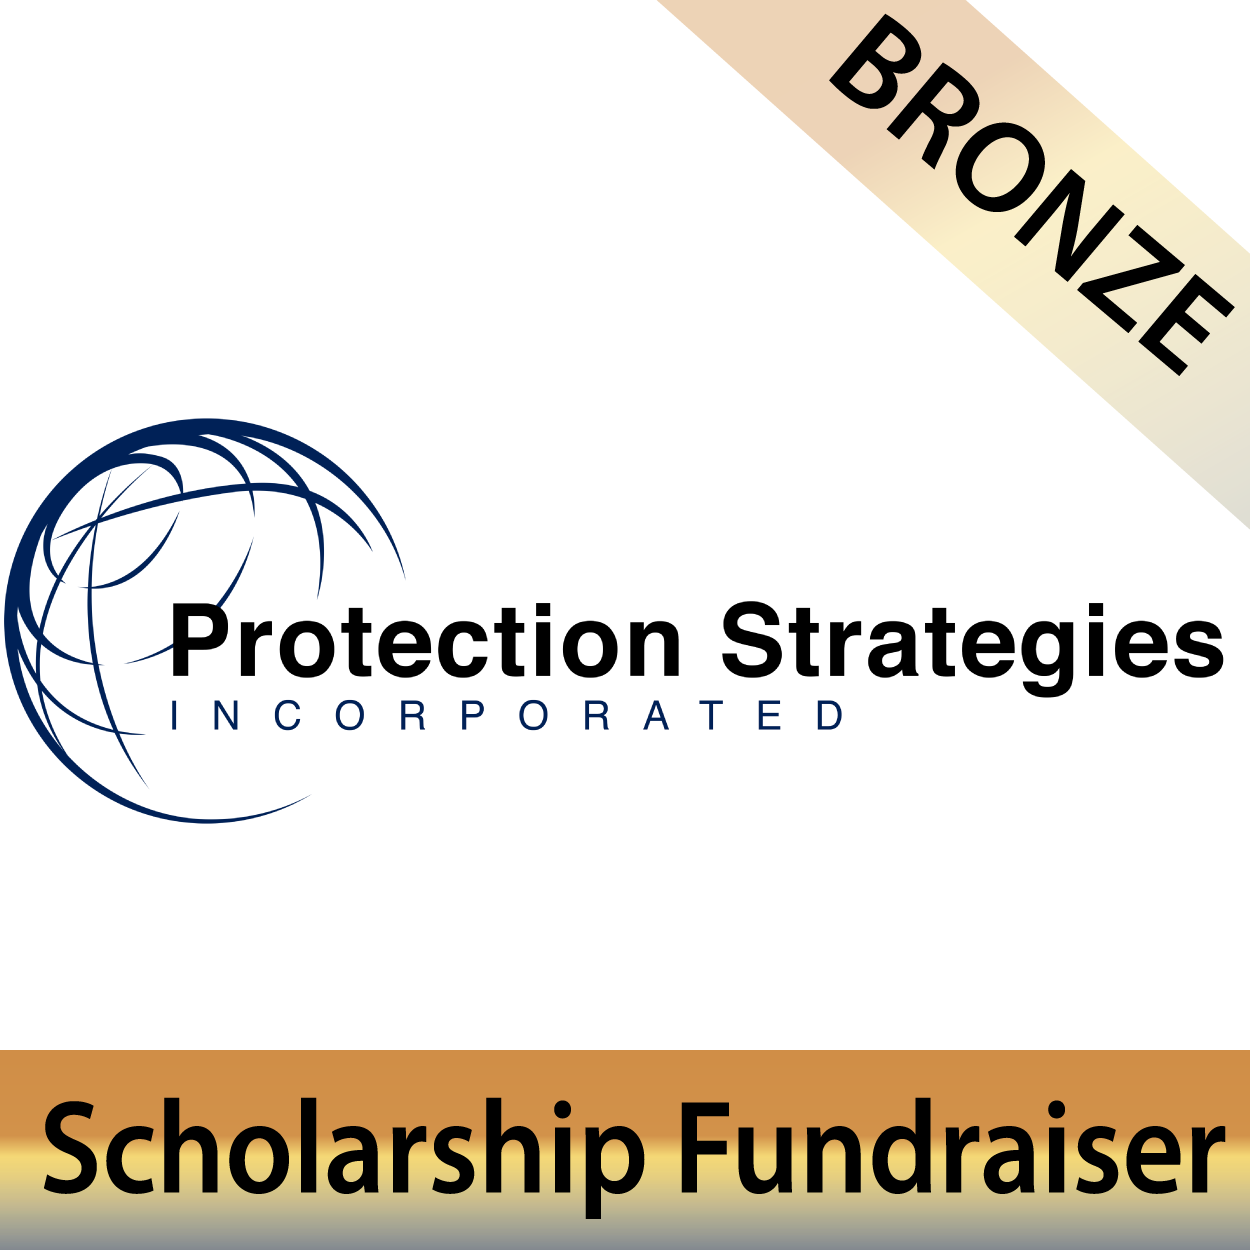 Protection Strategies Incorporated